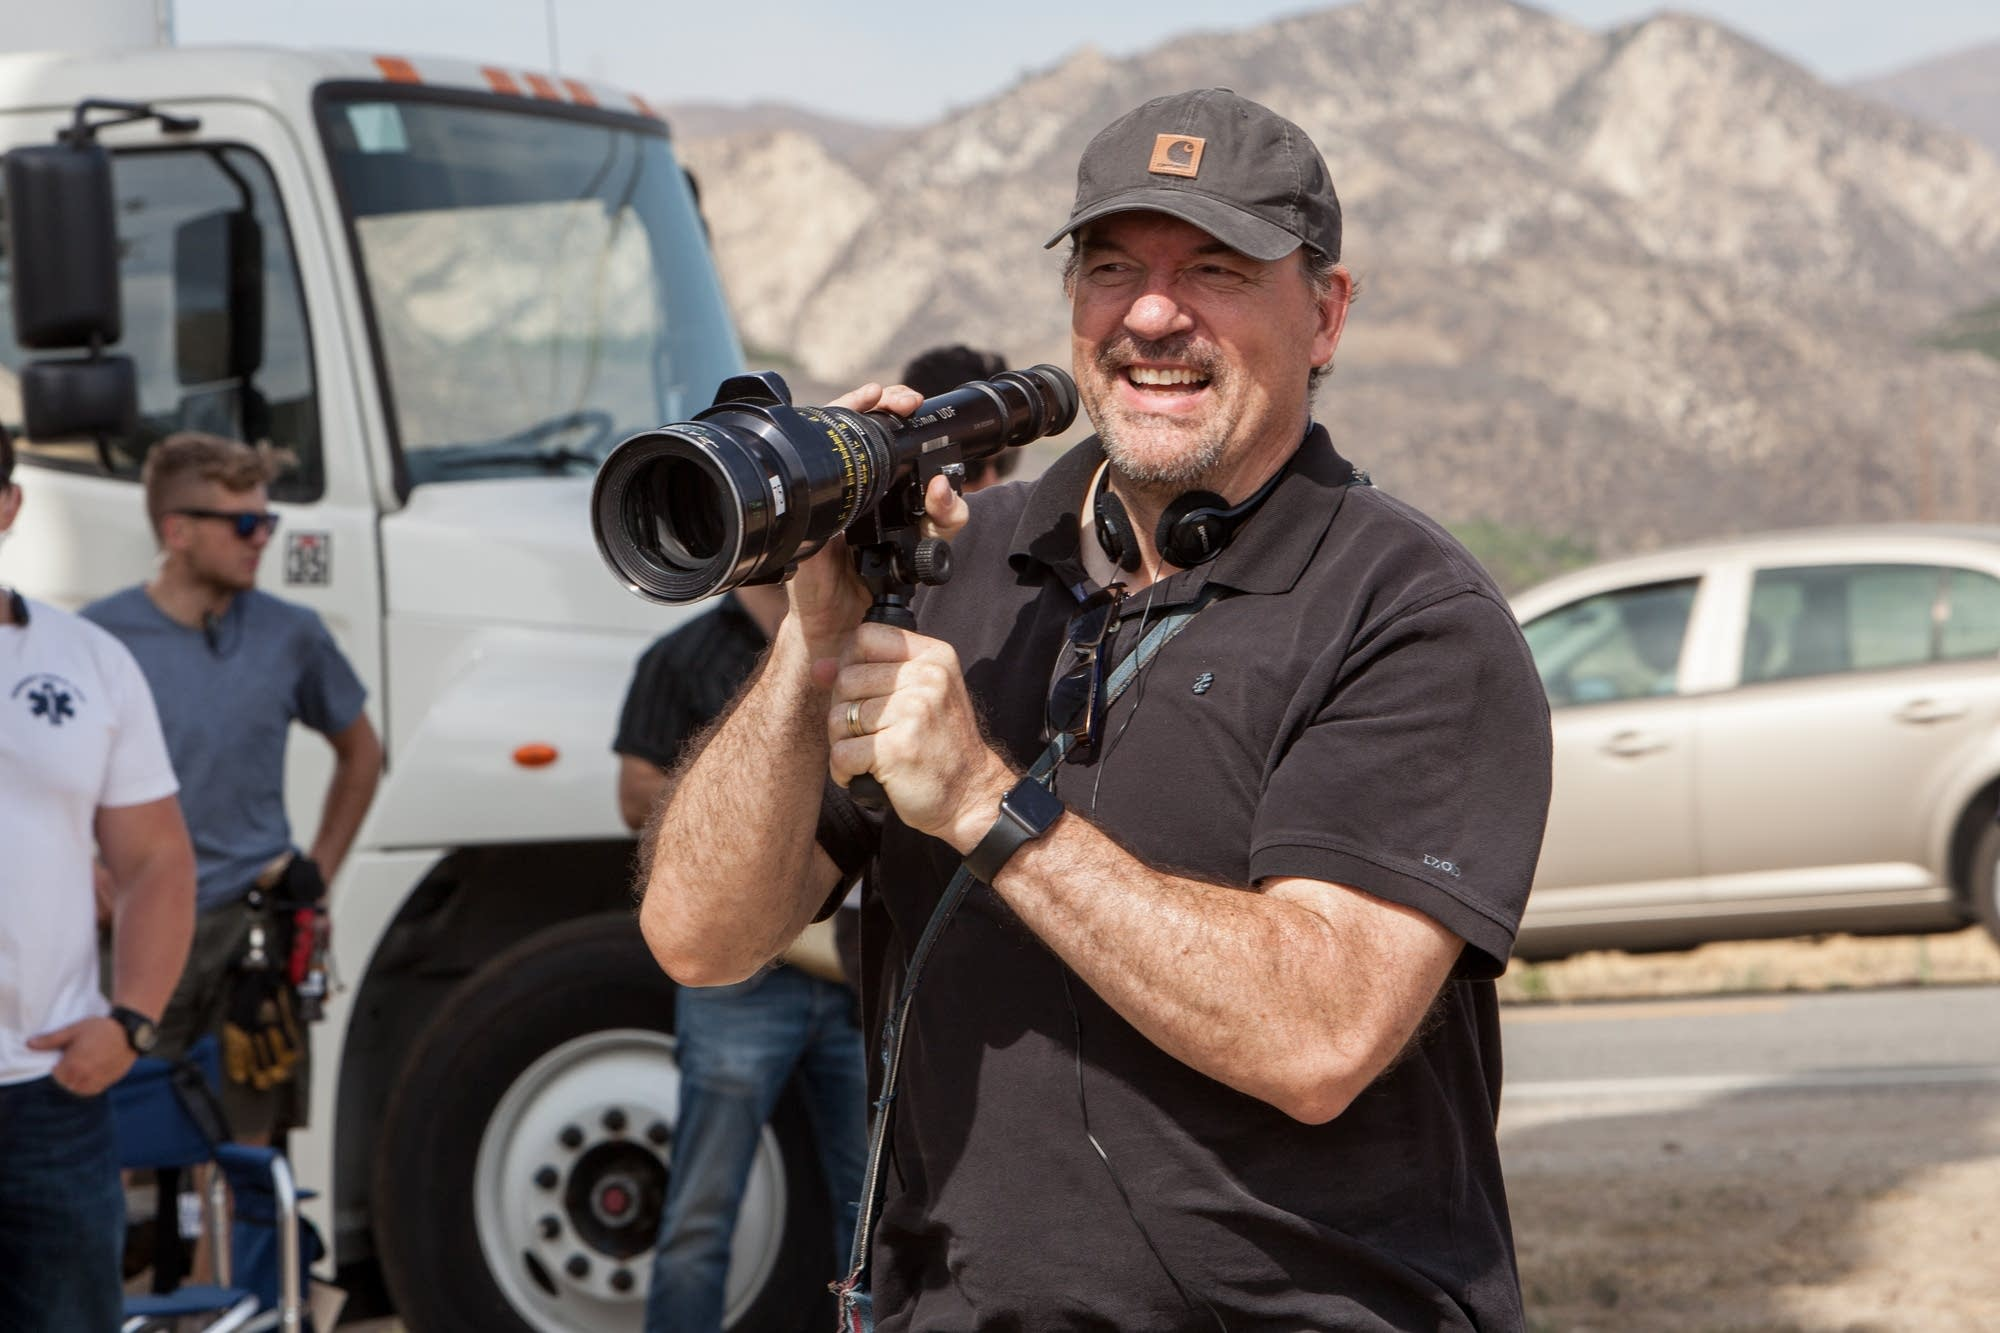 John Carroll Lynch on the set of 'Lucky' in Arizona.